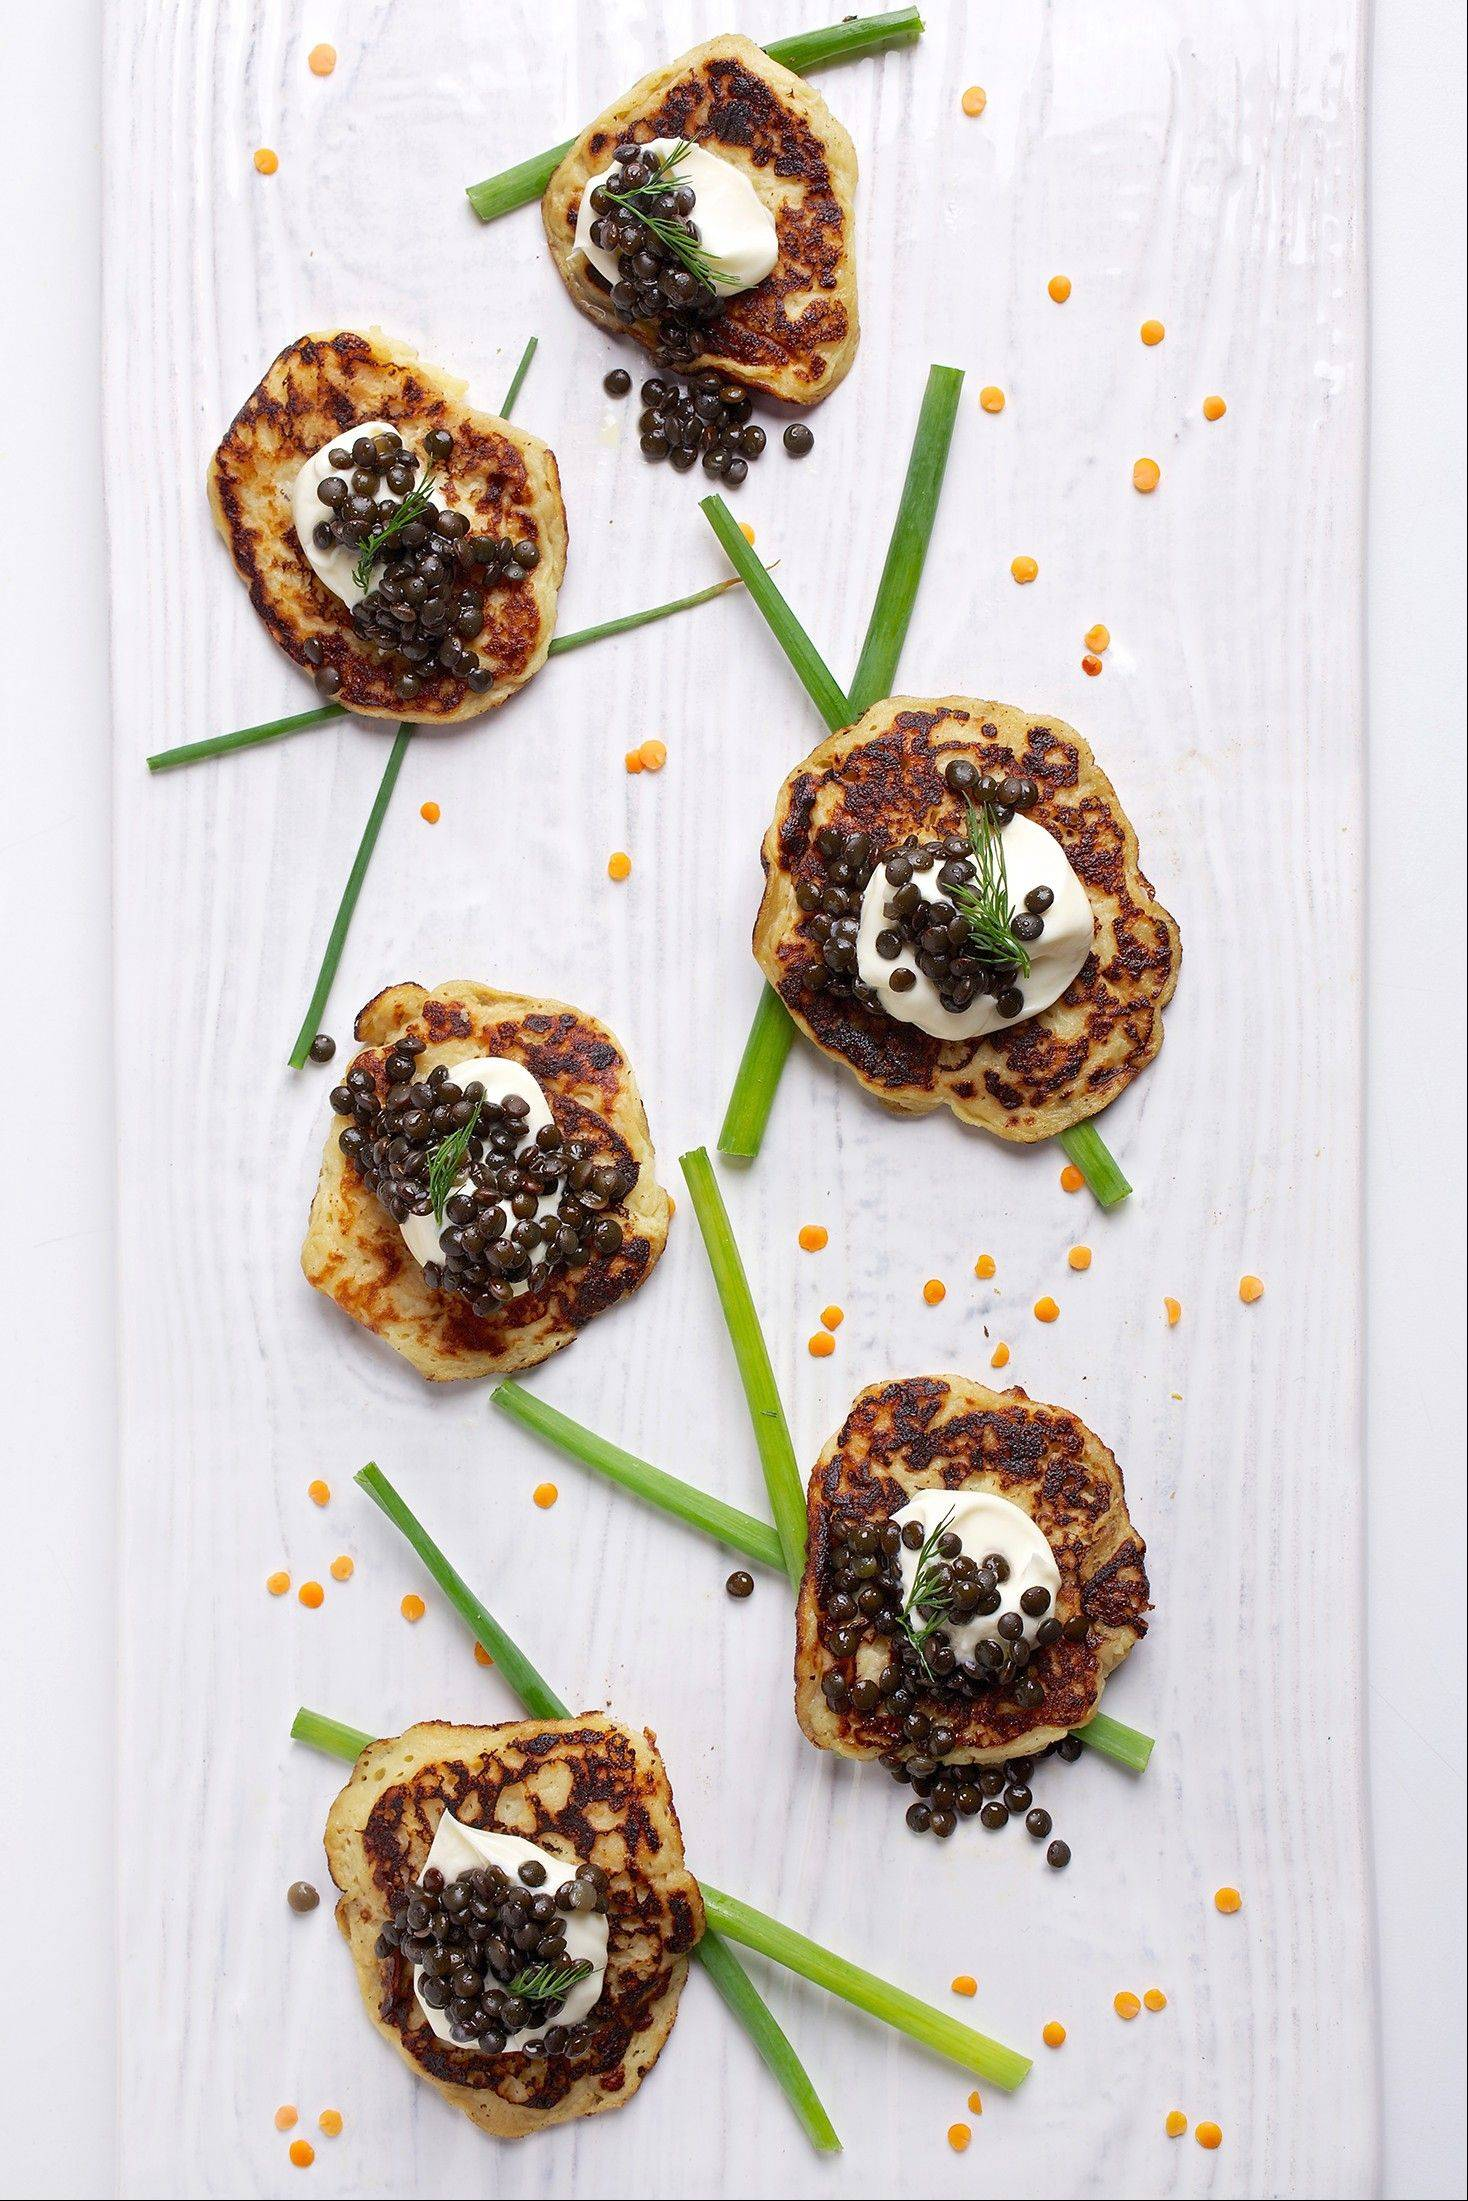 Lentils have countless culinary uses way beyond soups and stews, like these beluga lentils served caviar-style on potato blini.